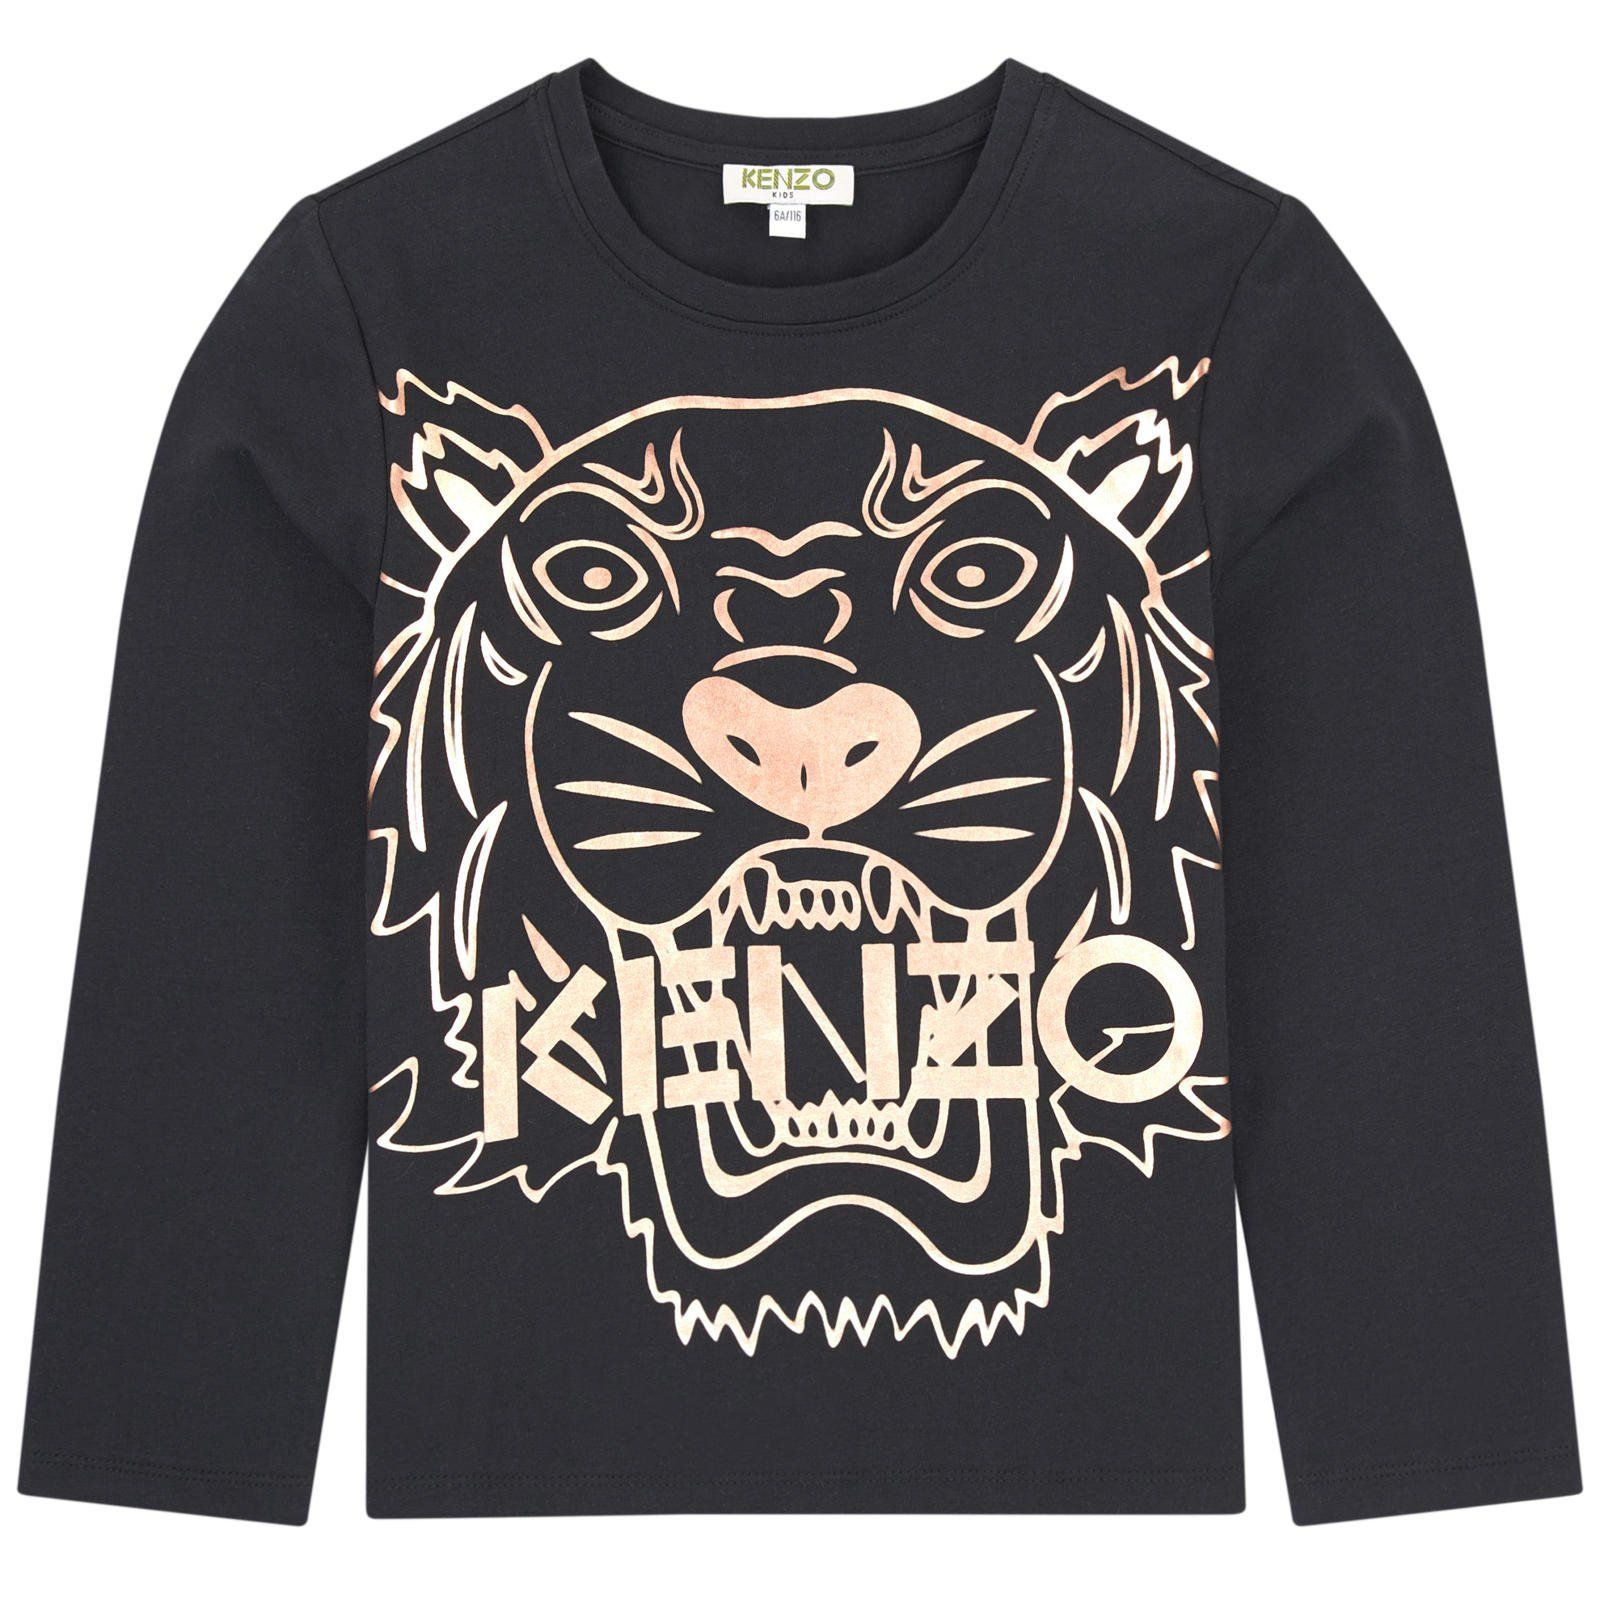 ca18c01b3397 Girls Black with Gold Tiger Logo Top   Products   Tiger logo, Gold ...